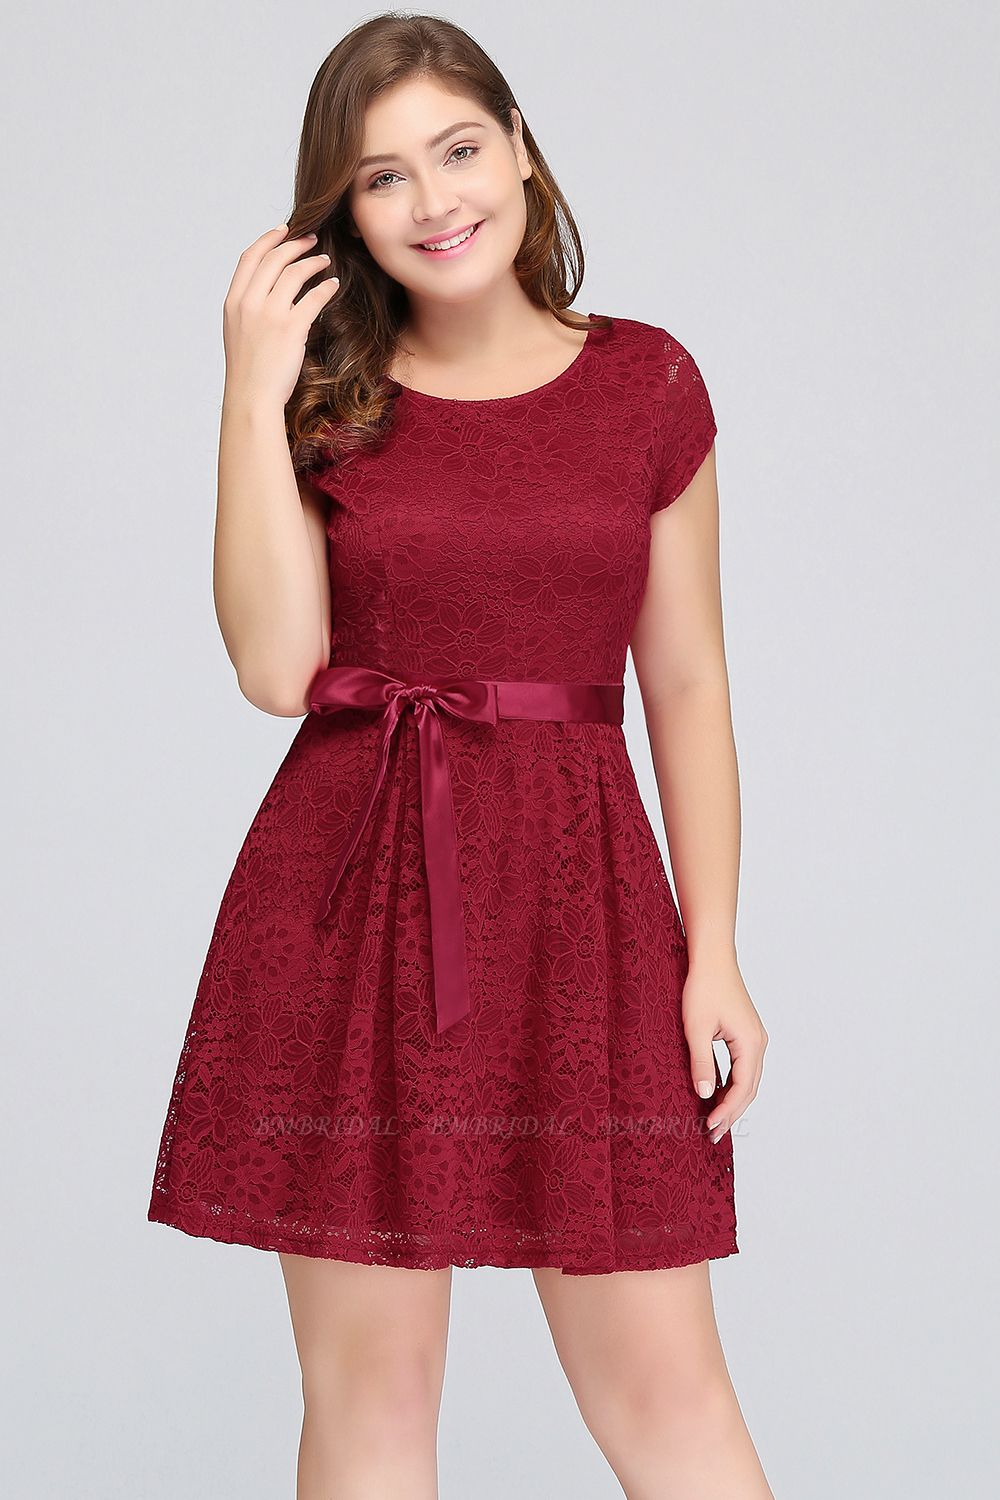 BMbridal Plus Size A-Line Jewel Burgundy Lace Bridesmaid dress with Short Sleeves